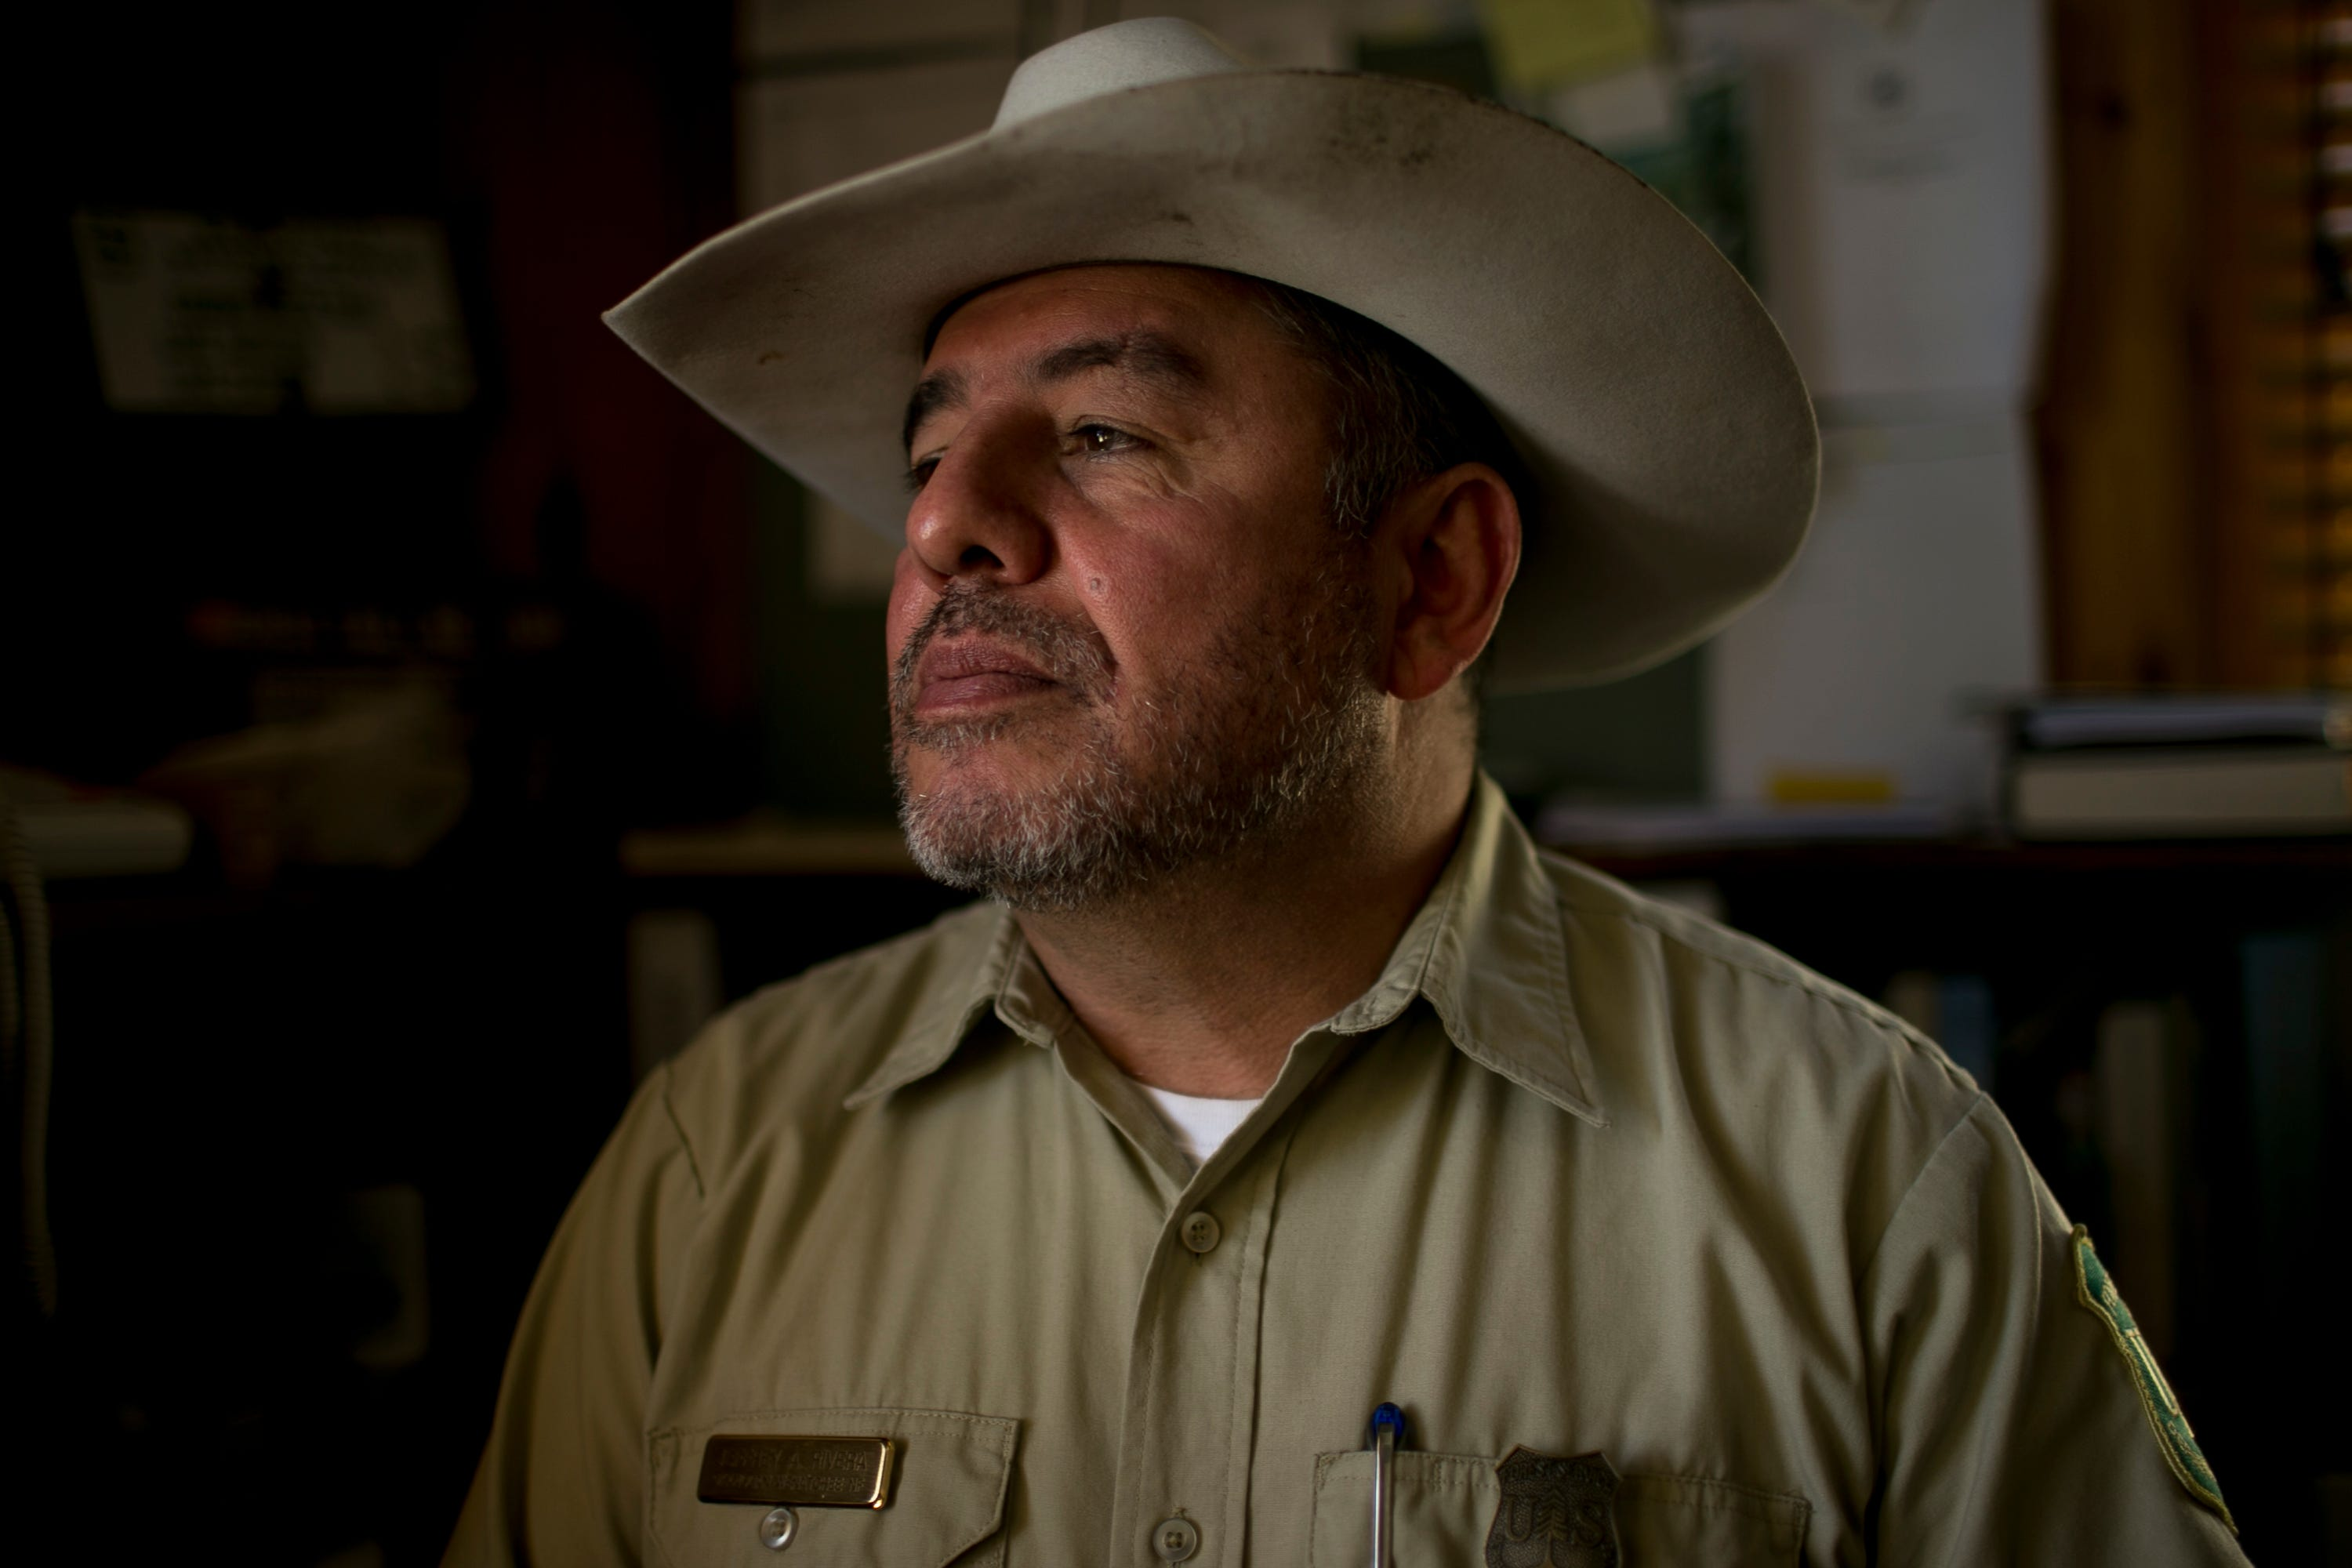 Jeff Rivera, the district ranger for the Wenatchee River Ranger District, sits in his office in Leavenworth, Washington, on June 18, 2019.